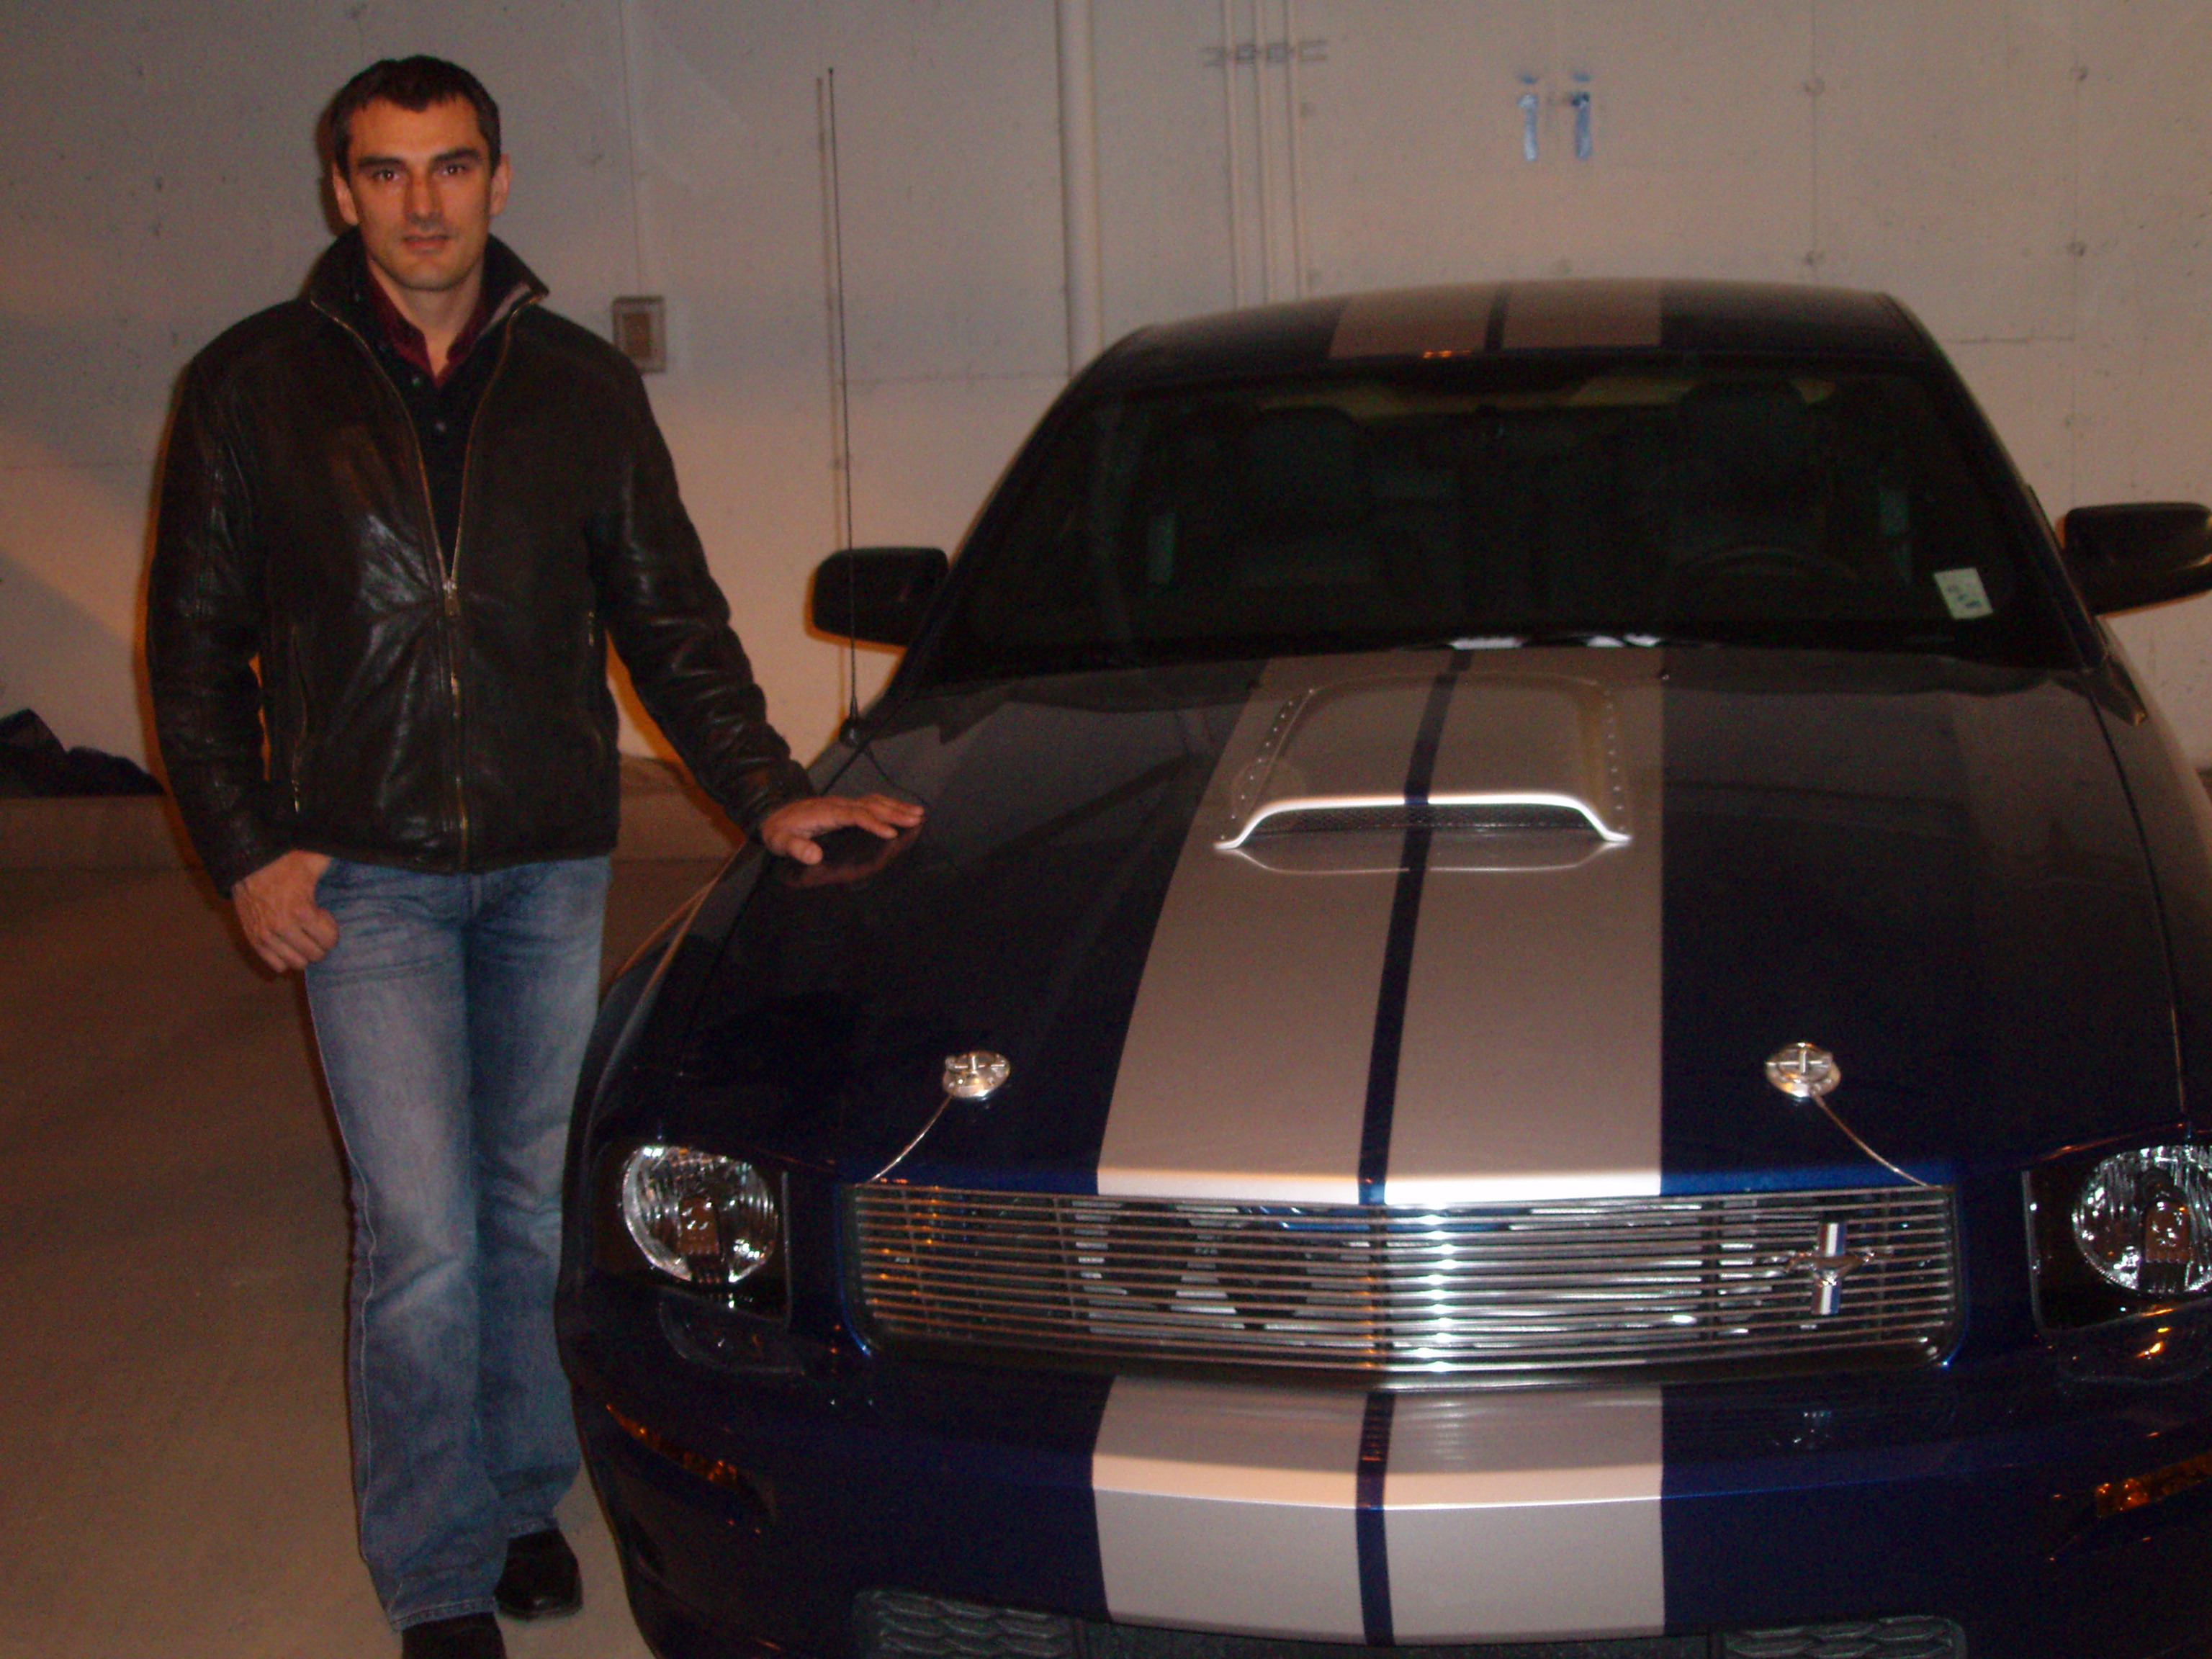 Click image for larger version  Name:Me & My 08.JPG Views:105 Size:1.57 MB ID:18992